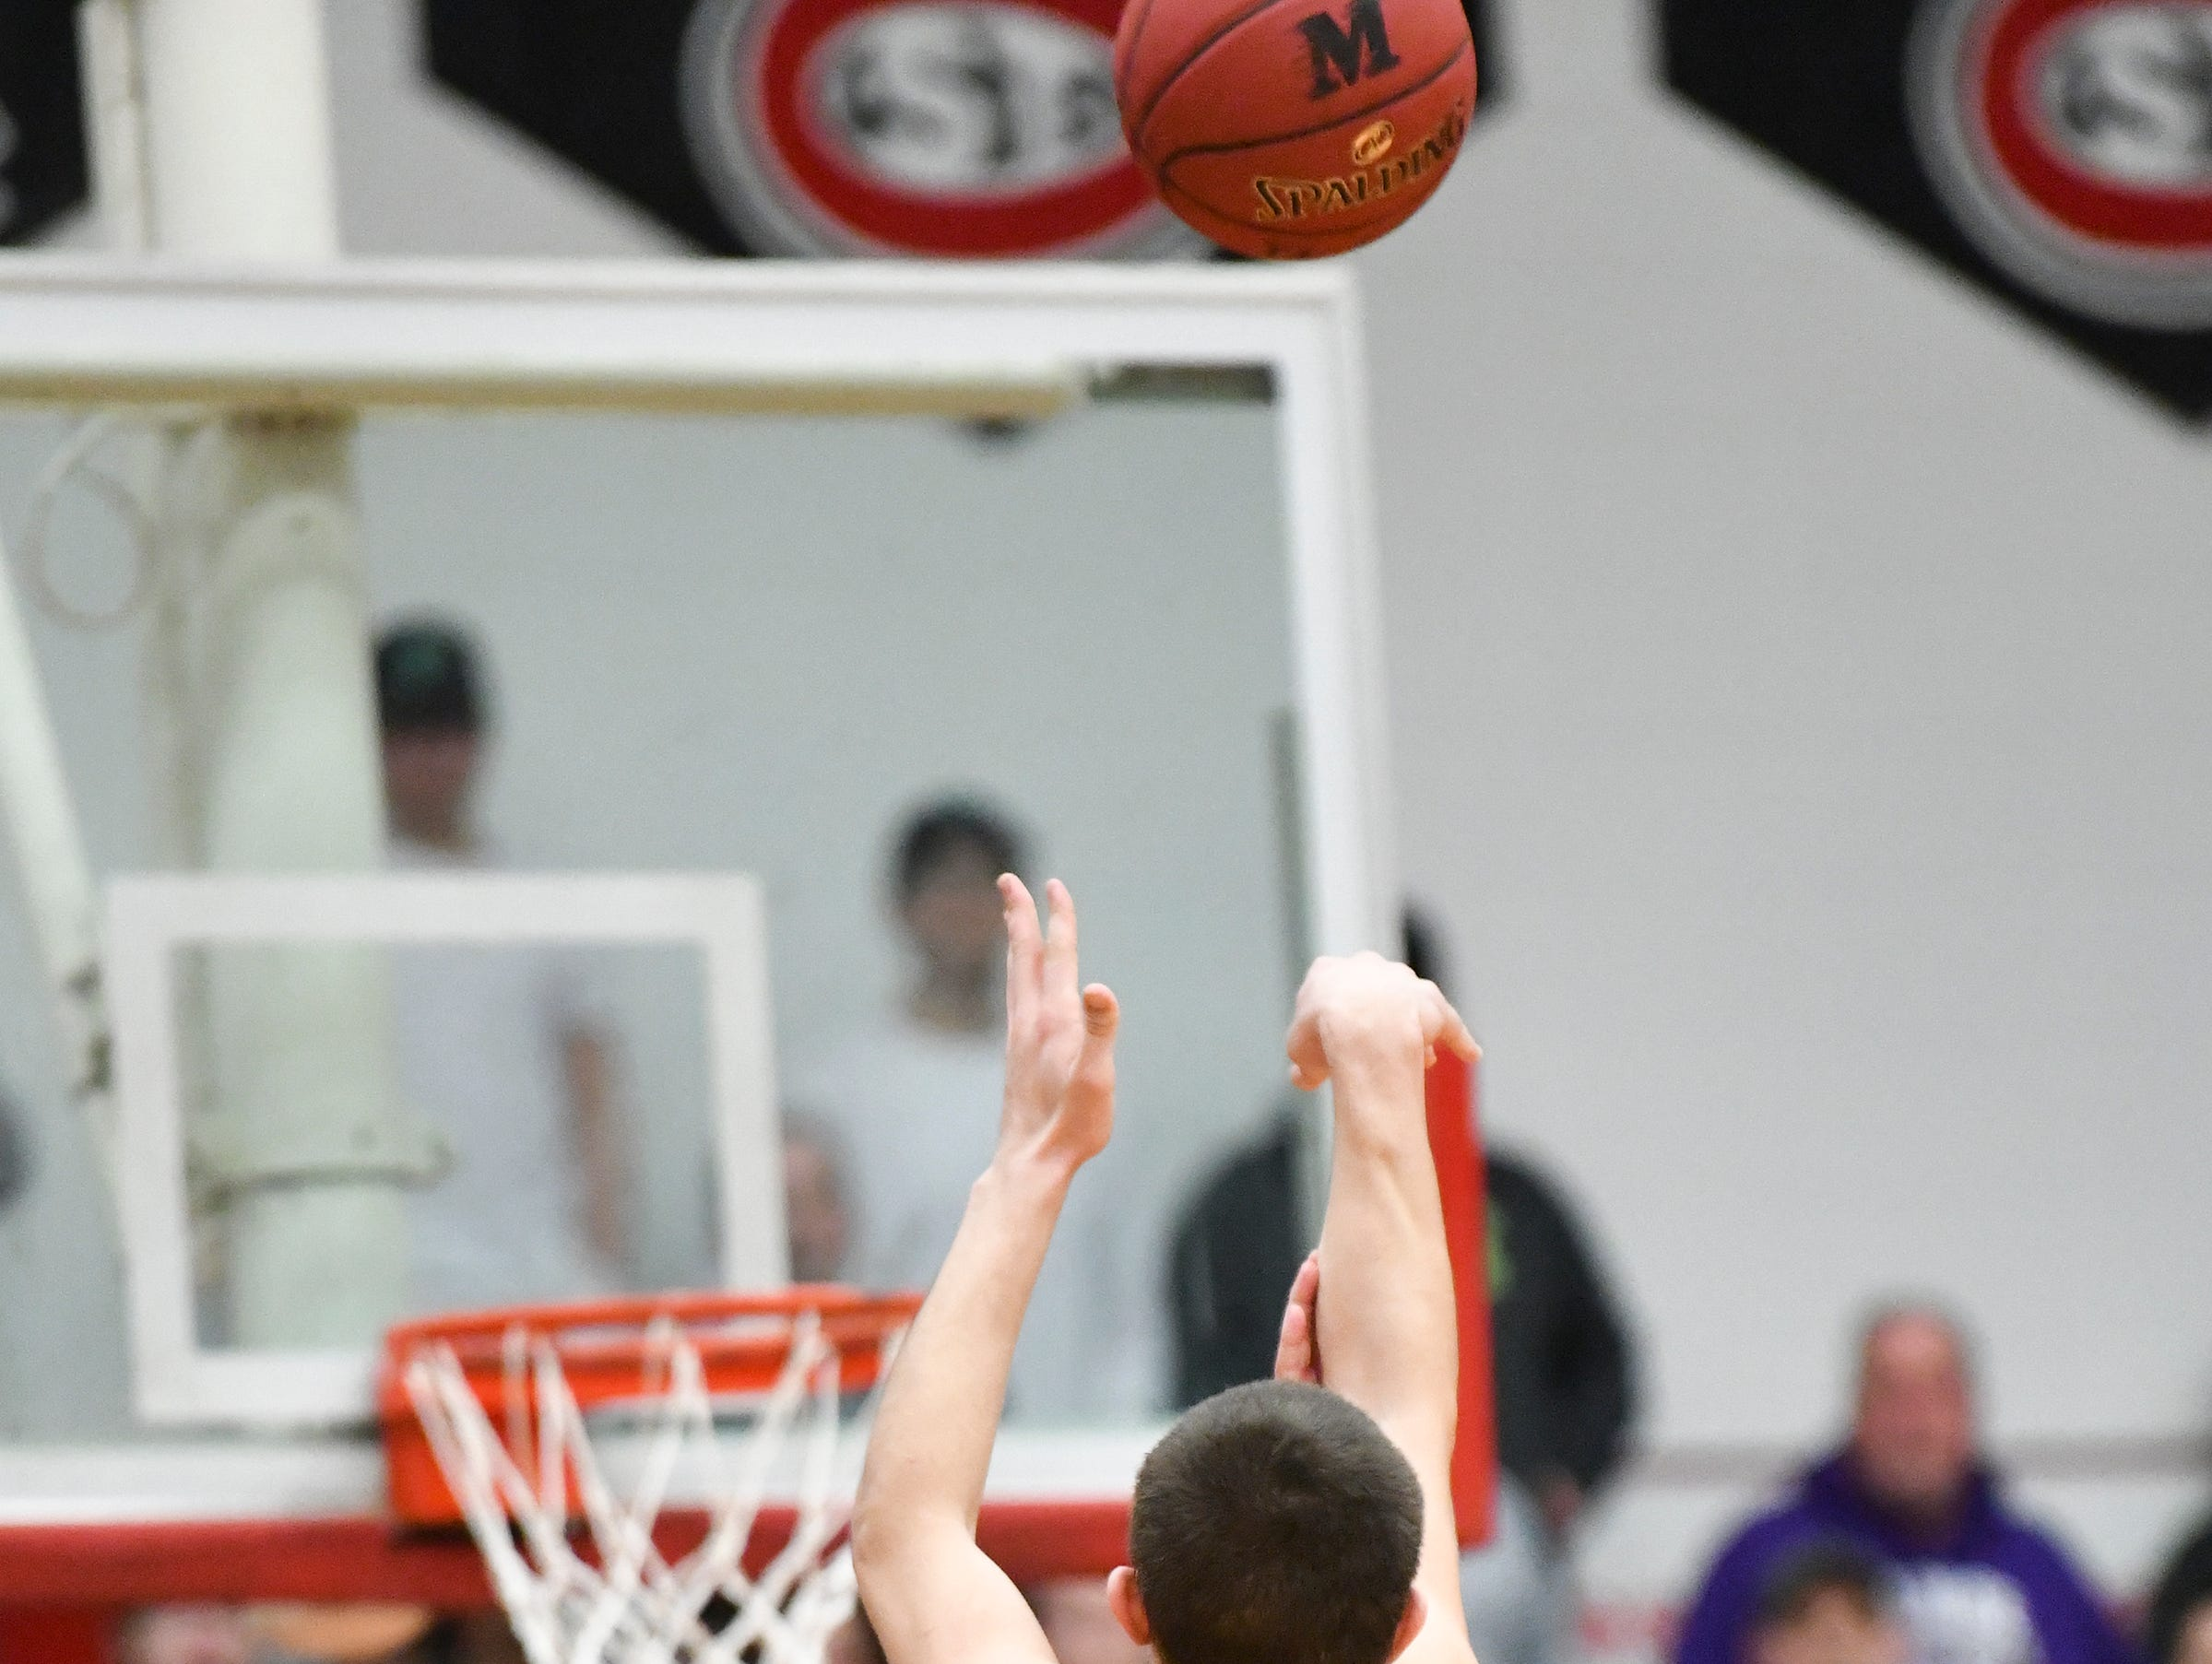 Preston Keaveny sinks a basket for Melrose during the second half of the Friday, March 15, Section 6-2A championship game at Halenbeck Hall in St. Cloud.